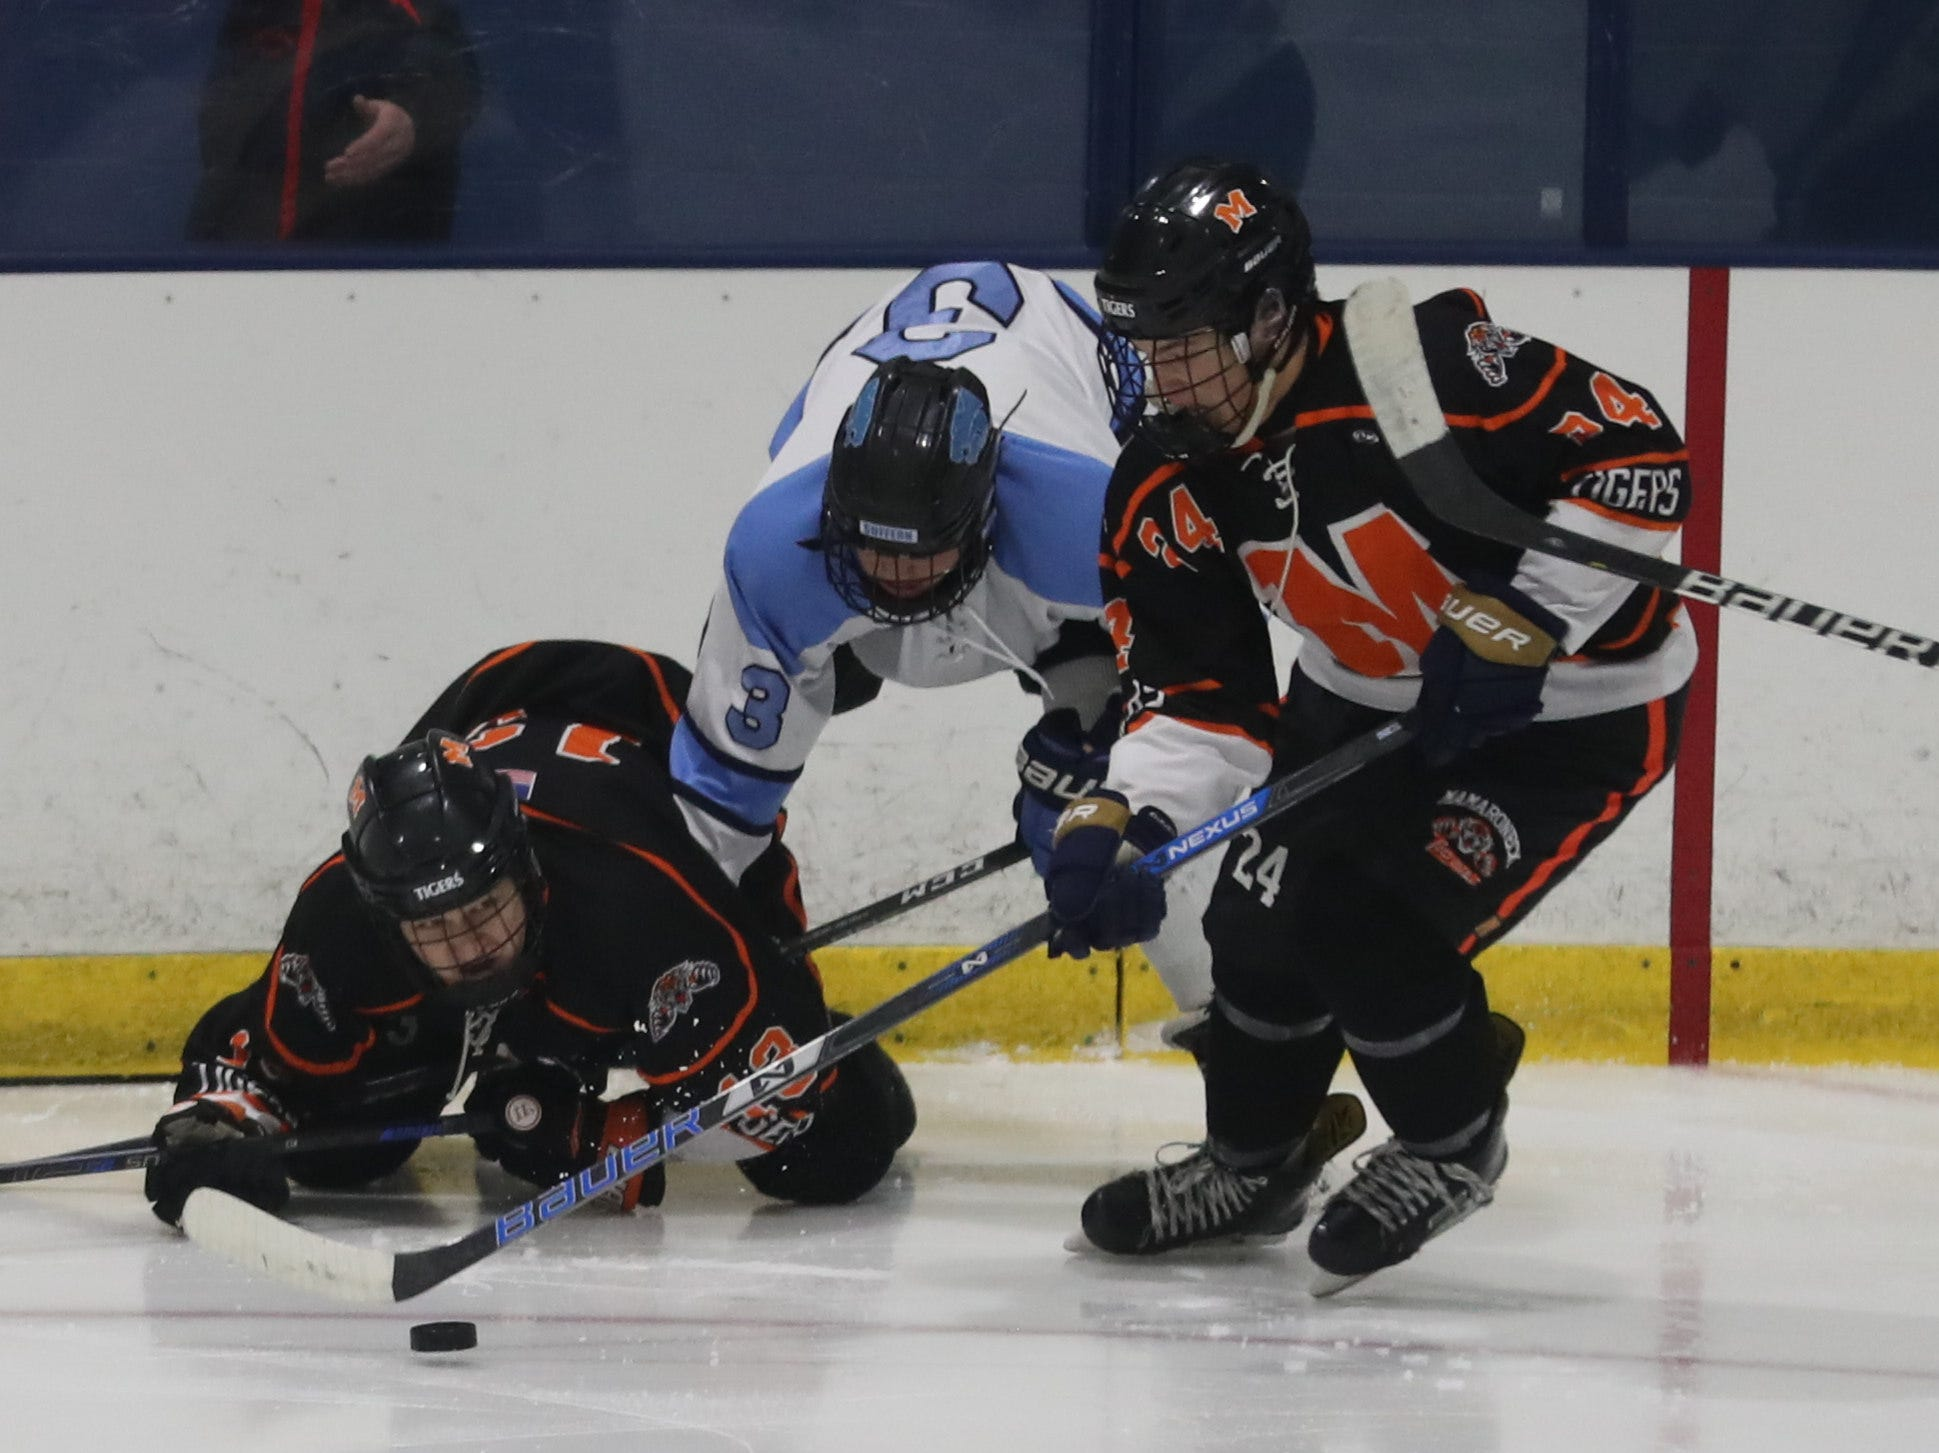 Suffern's Jared Marder goes airborne while being sandwiched against Mamaroneck during the Section 1 Division 1 championship game at Sport-o-Rama in Monsey Feb. 24, 2019. Suffern defeated Mamaroneck 4-1.